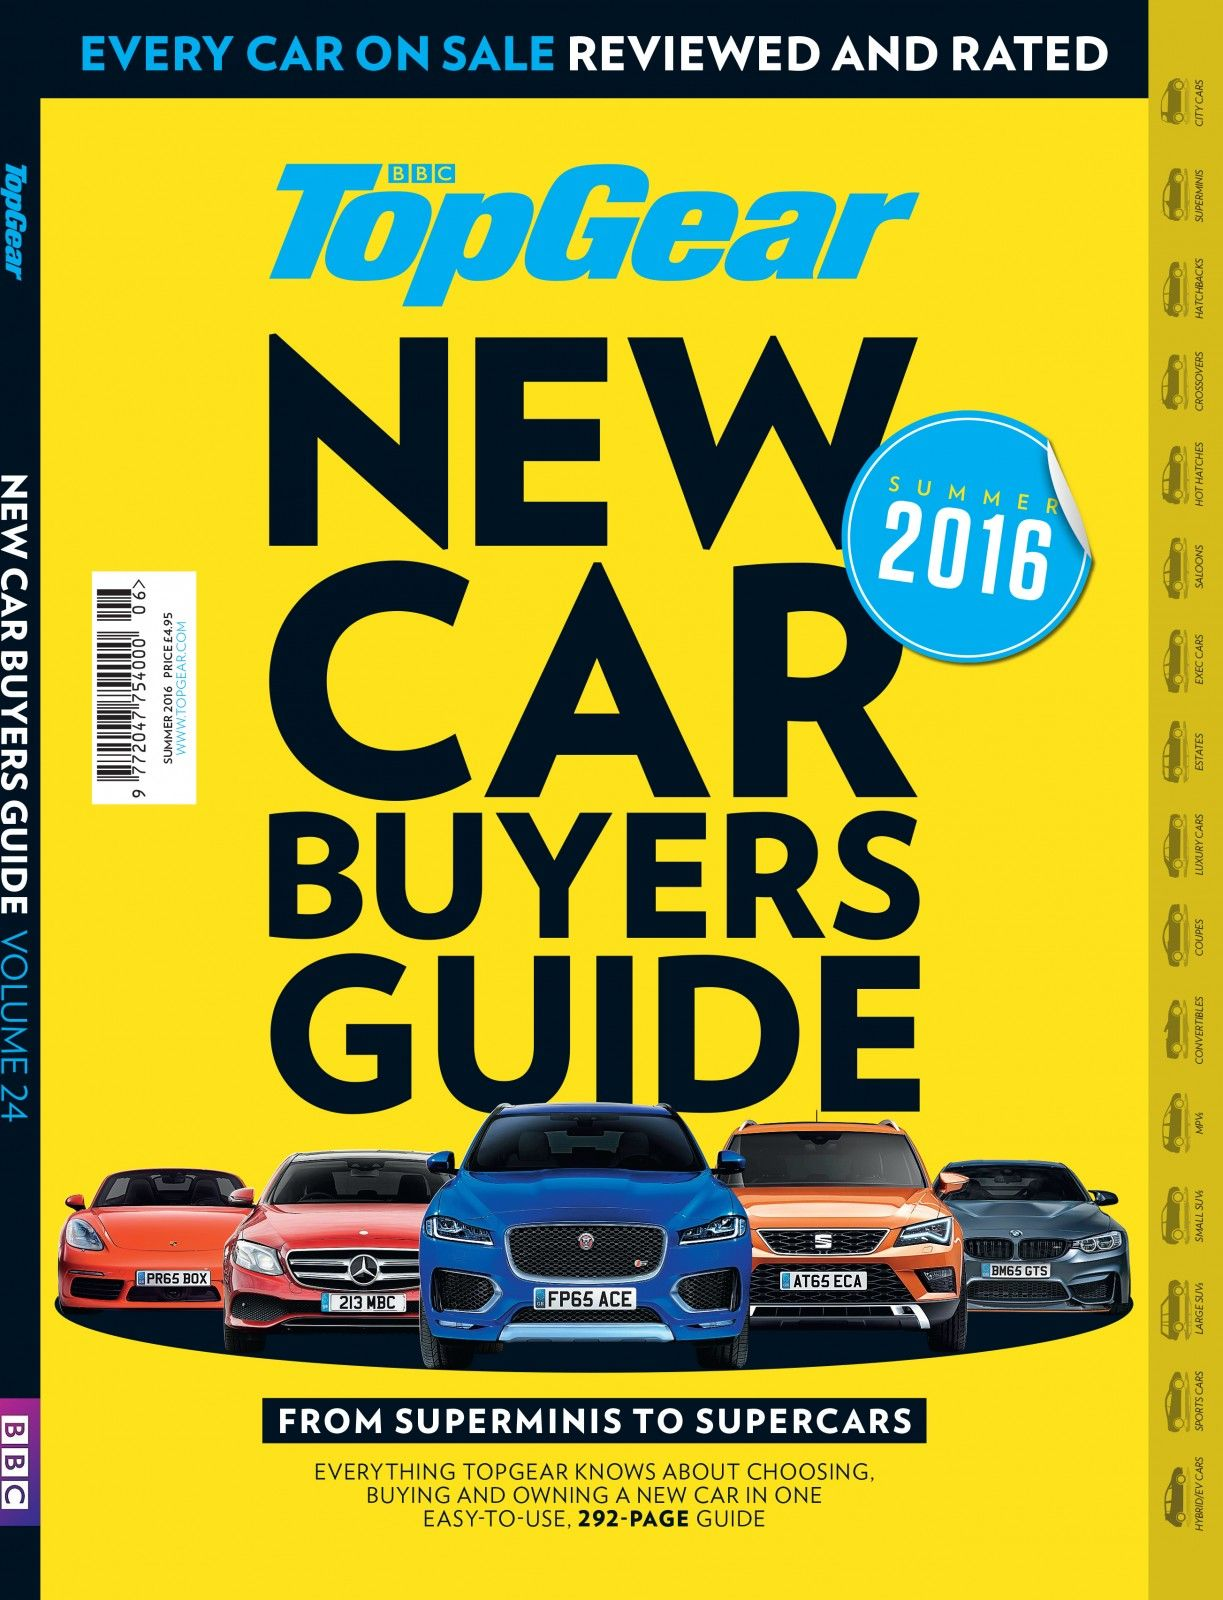 the top gear new car buyers guide every car on sale reviewed and rated summer 2016 edition. Black Bedroom Furniture Sets. Home Design Ideas